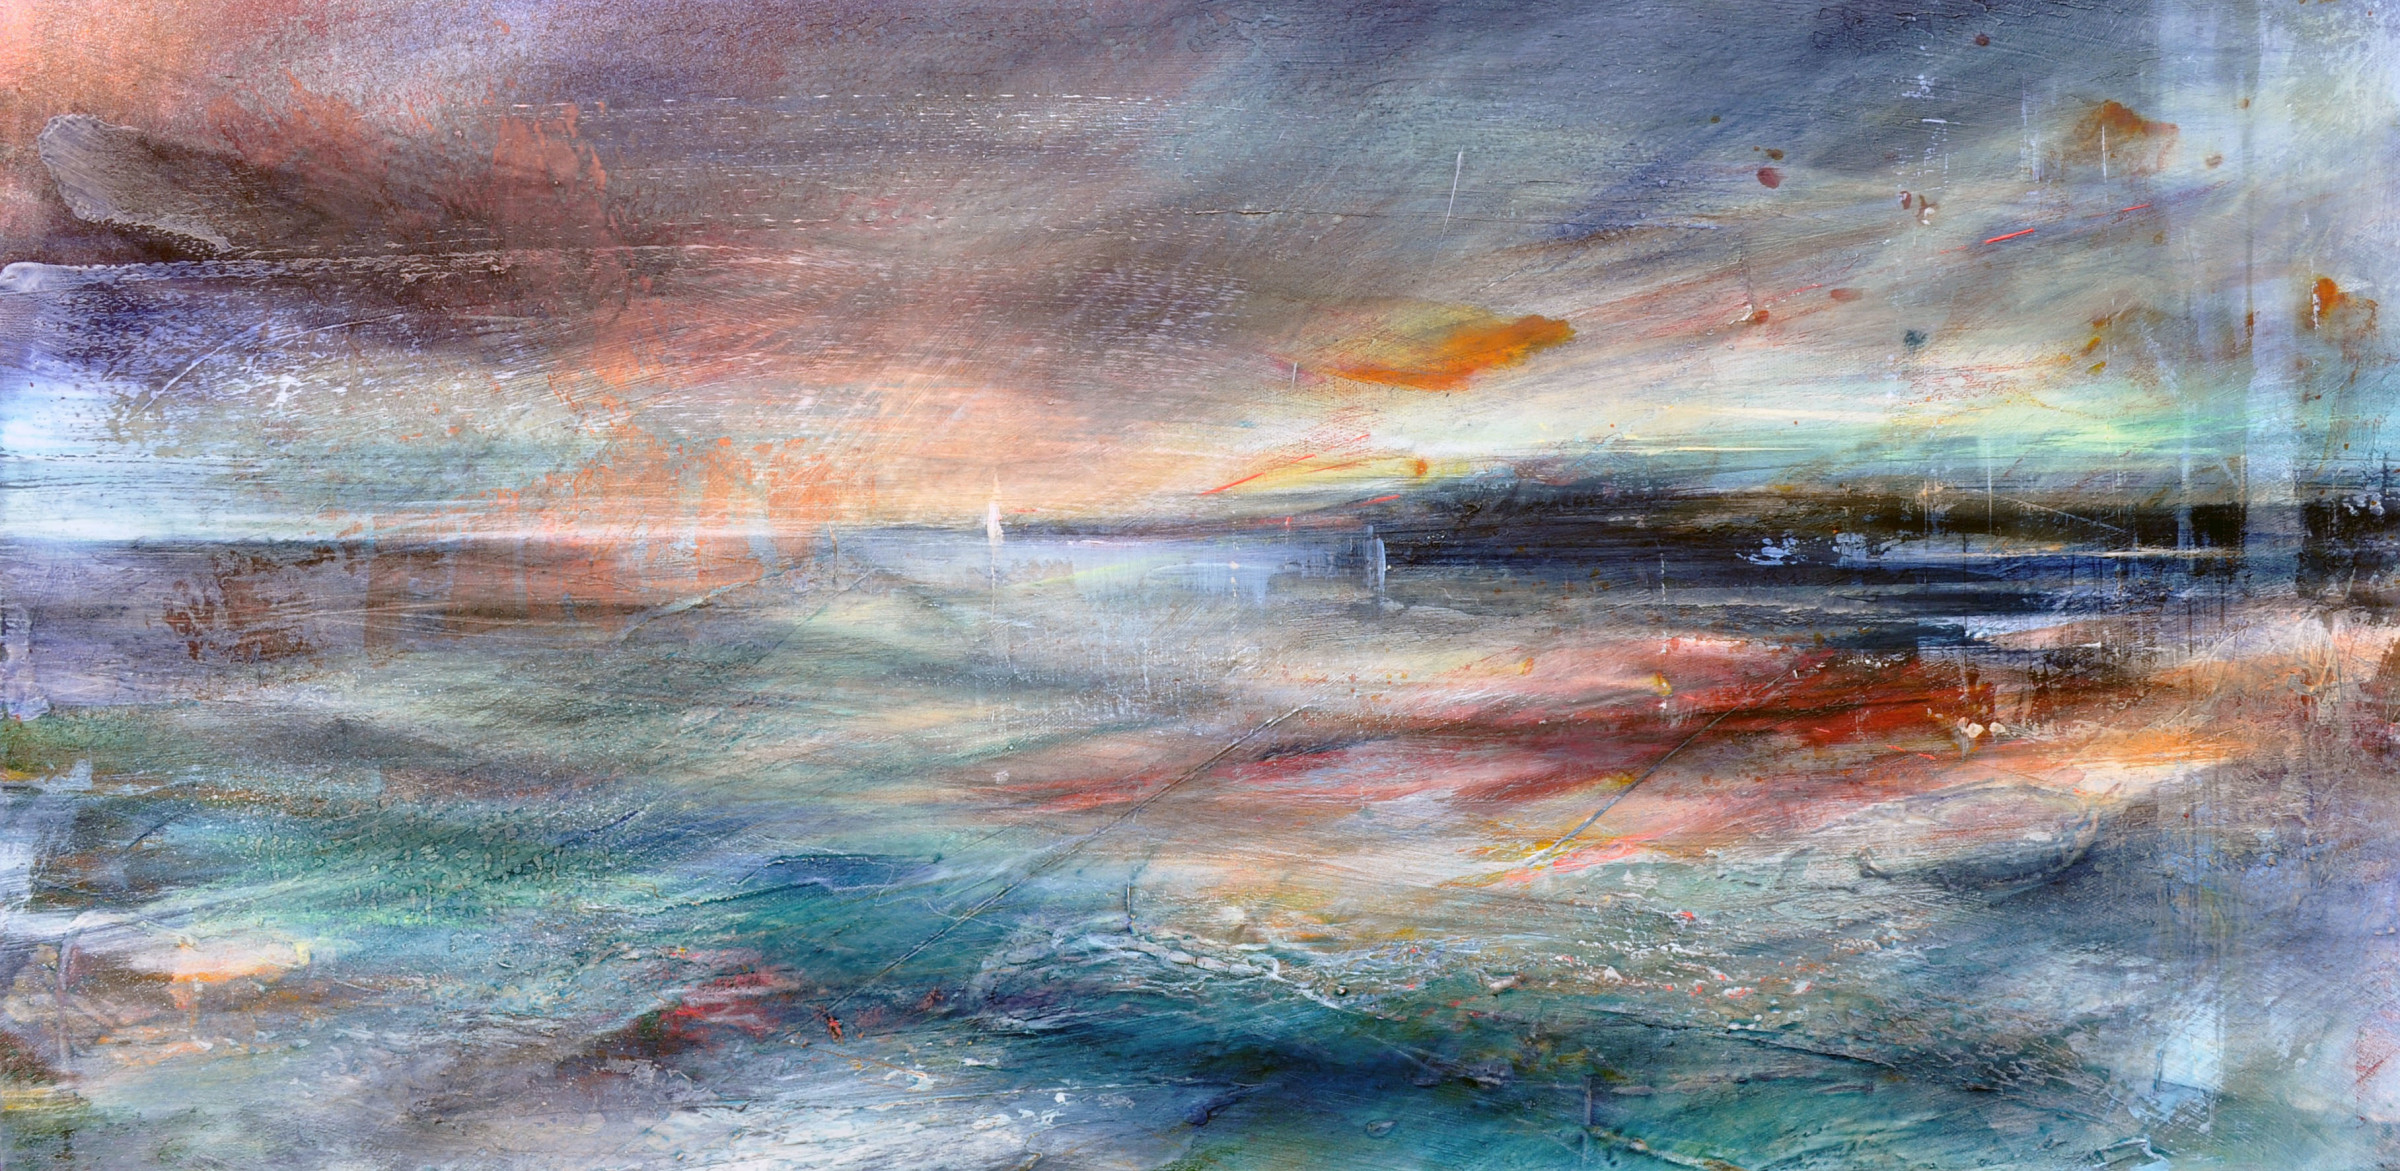 <span class=&#34;link fancybox-details-link&#34;><a href=&#34;/artists/90-freya-horsley/works/5540-freya-horsley-turning-to-go-2018/&#34;>View Detail Page</a></span><div class=&#34;artist&#34;><strong>Freya Horsley</strong></div> <div class=&#34;title&#34;><em>Turning to Go </em>, 2018</div> <div class=&#34;signed_and_dated&#34;>signed on the reverse</div> <div class=&#34;medium&#34;>mixed media on canvas</div> <div class=&#34;dimensions&#34;>40 x 80 cm<br /> 15 3/4 x 31 1/2 inches</div><div class=&#34;price&#34;>£950.00</div><div class=&#34;copyright_line&#34;>£ 95 x 10 Months, OwnArt 0% APR</div>